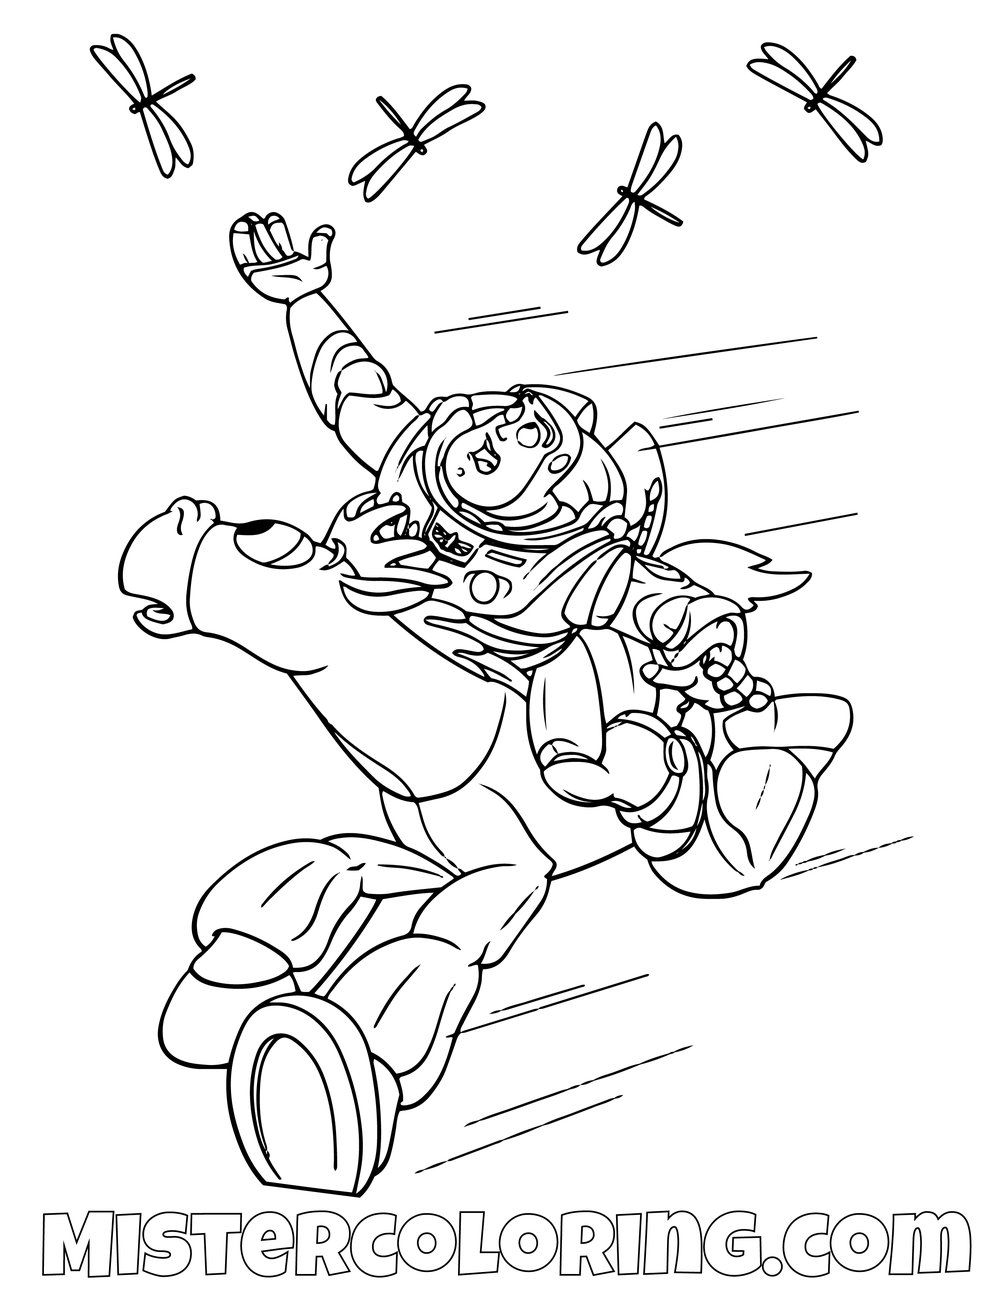 Buzz Lightyear Riding Bullseye Toy Story Coloring Page